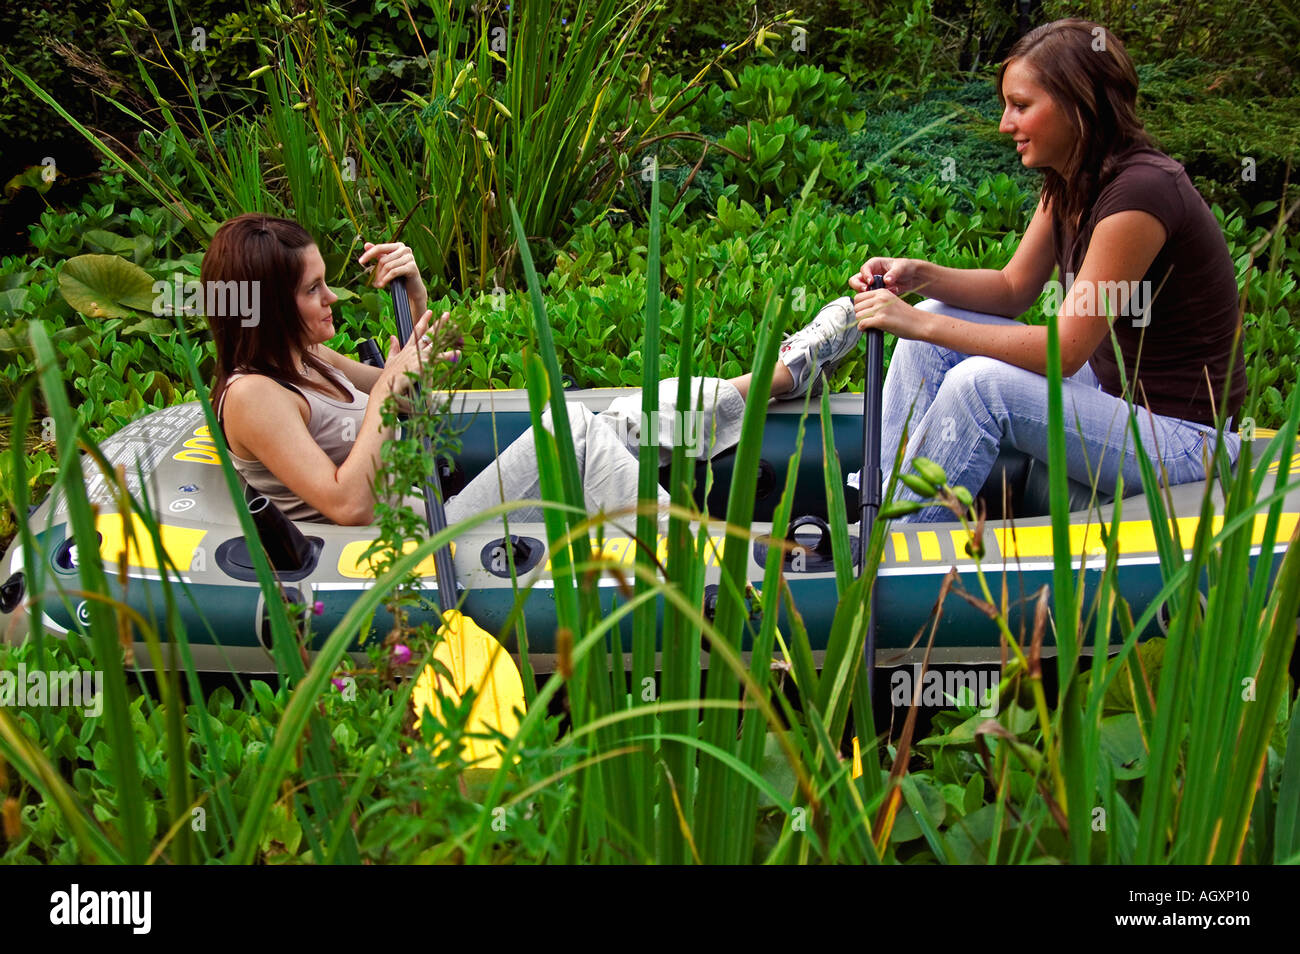 summertime.Two pretty girls in dingy alongside reeds.etc. - Stock Image